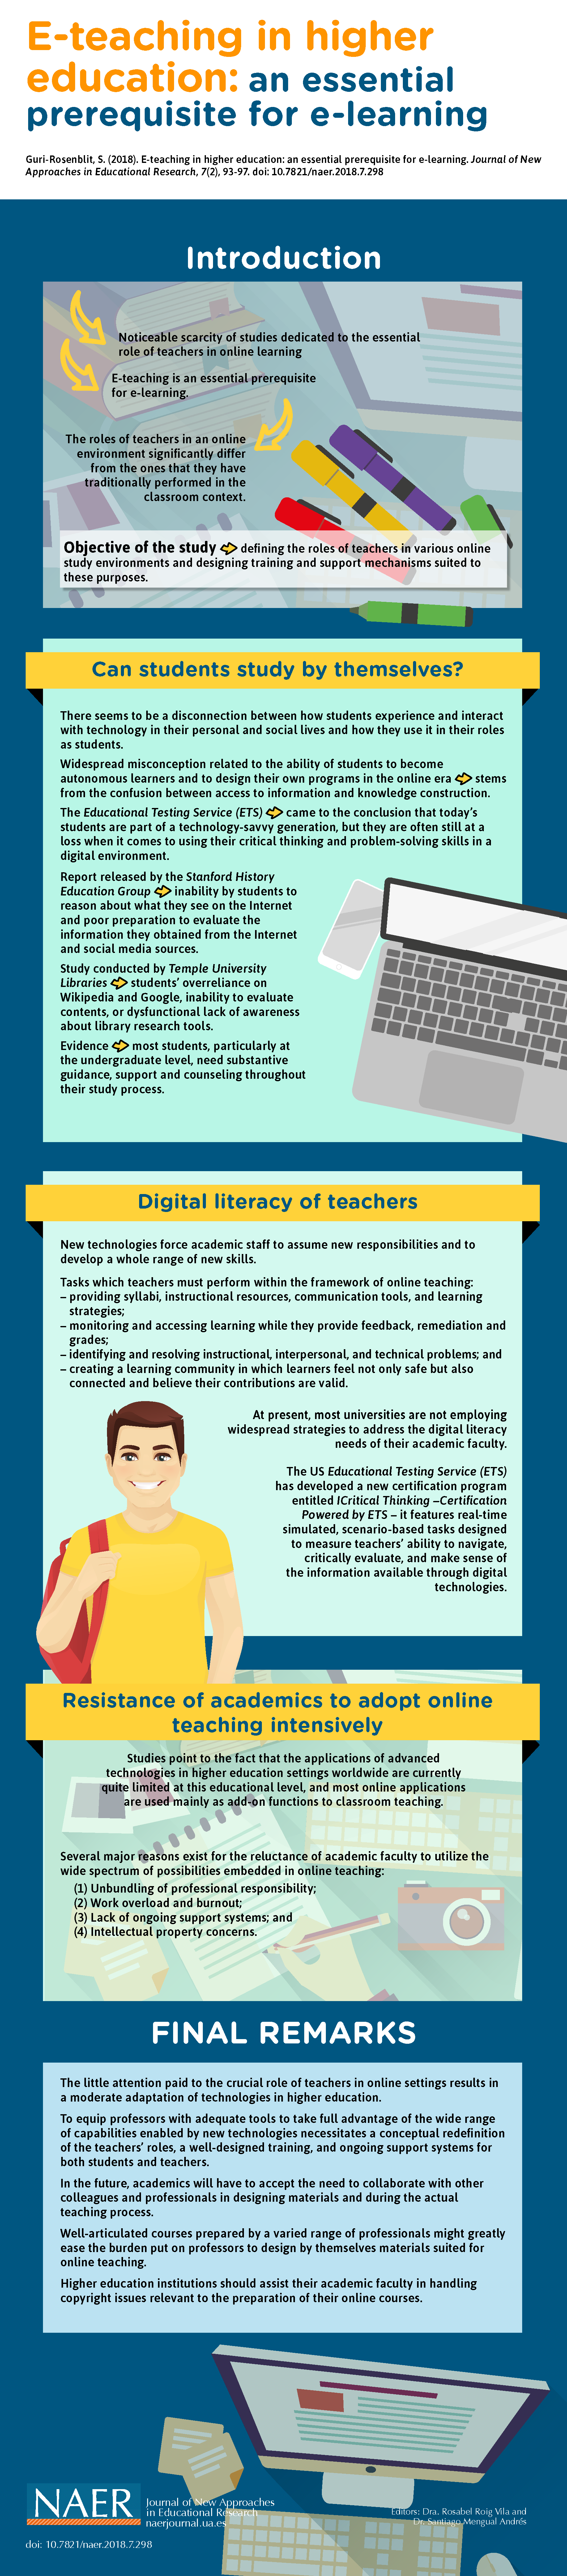 E-Teaching in Higher Education: An Essential Prerequisite ...